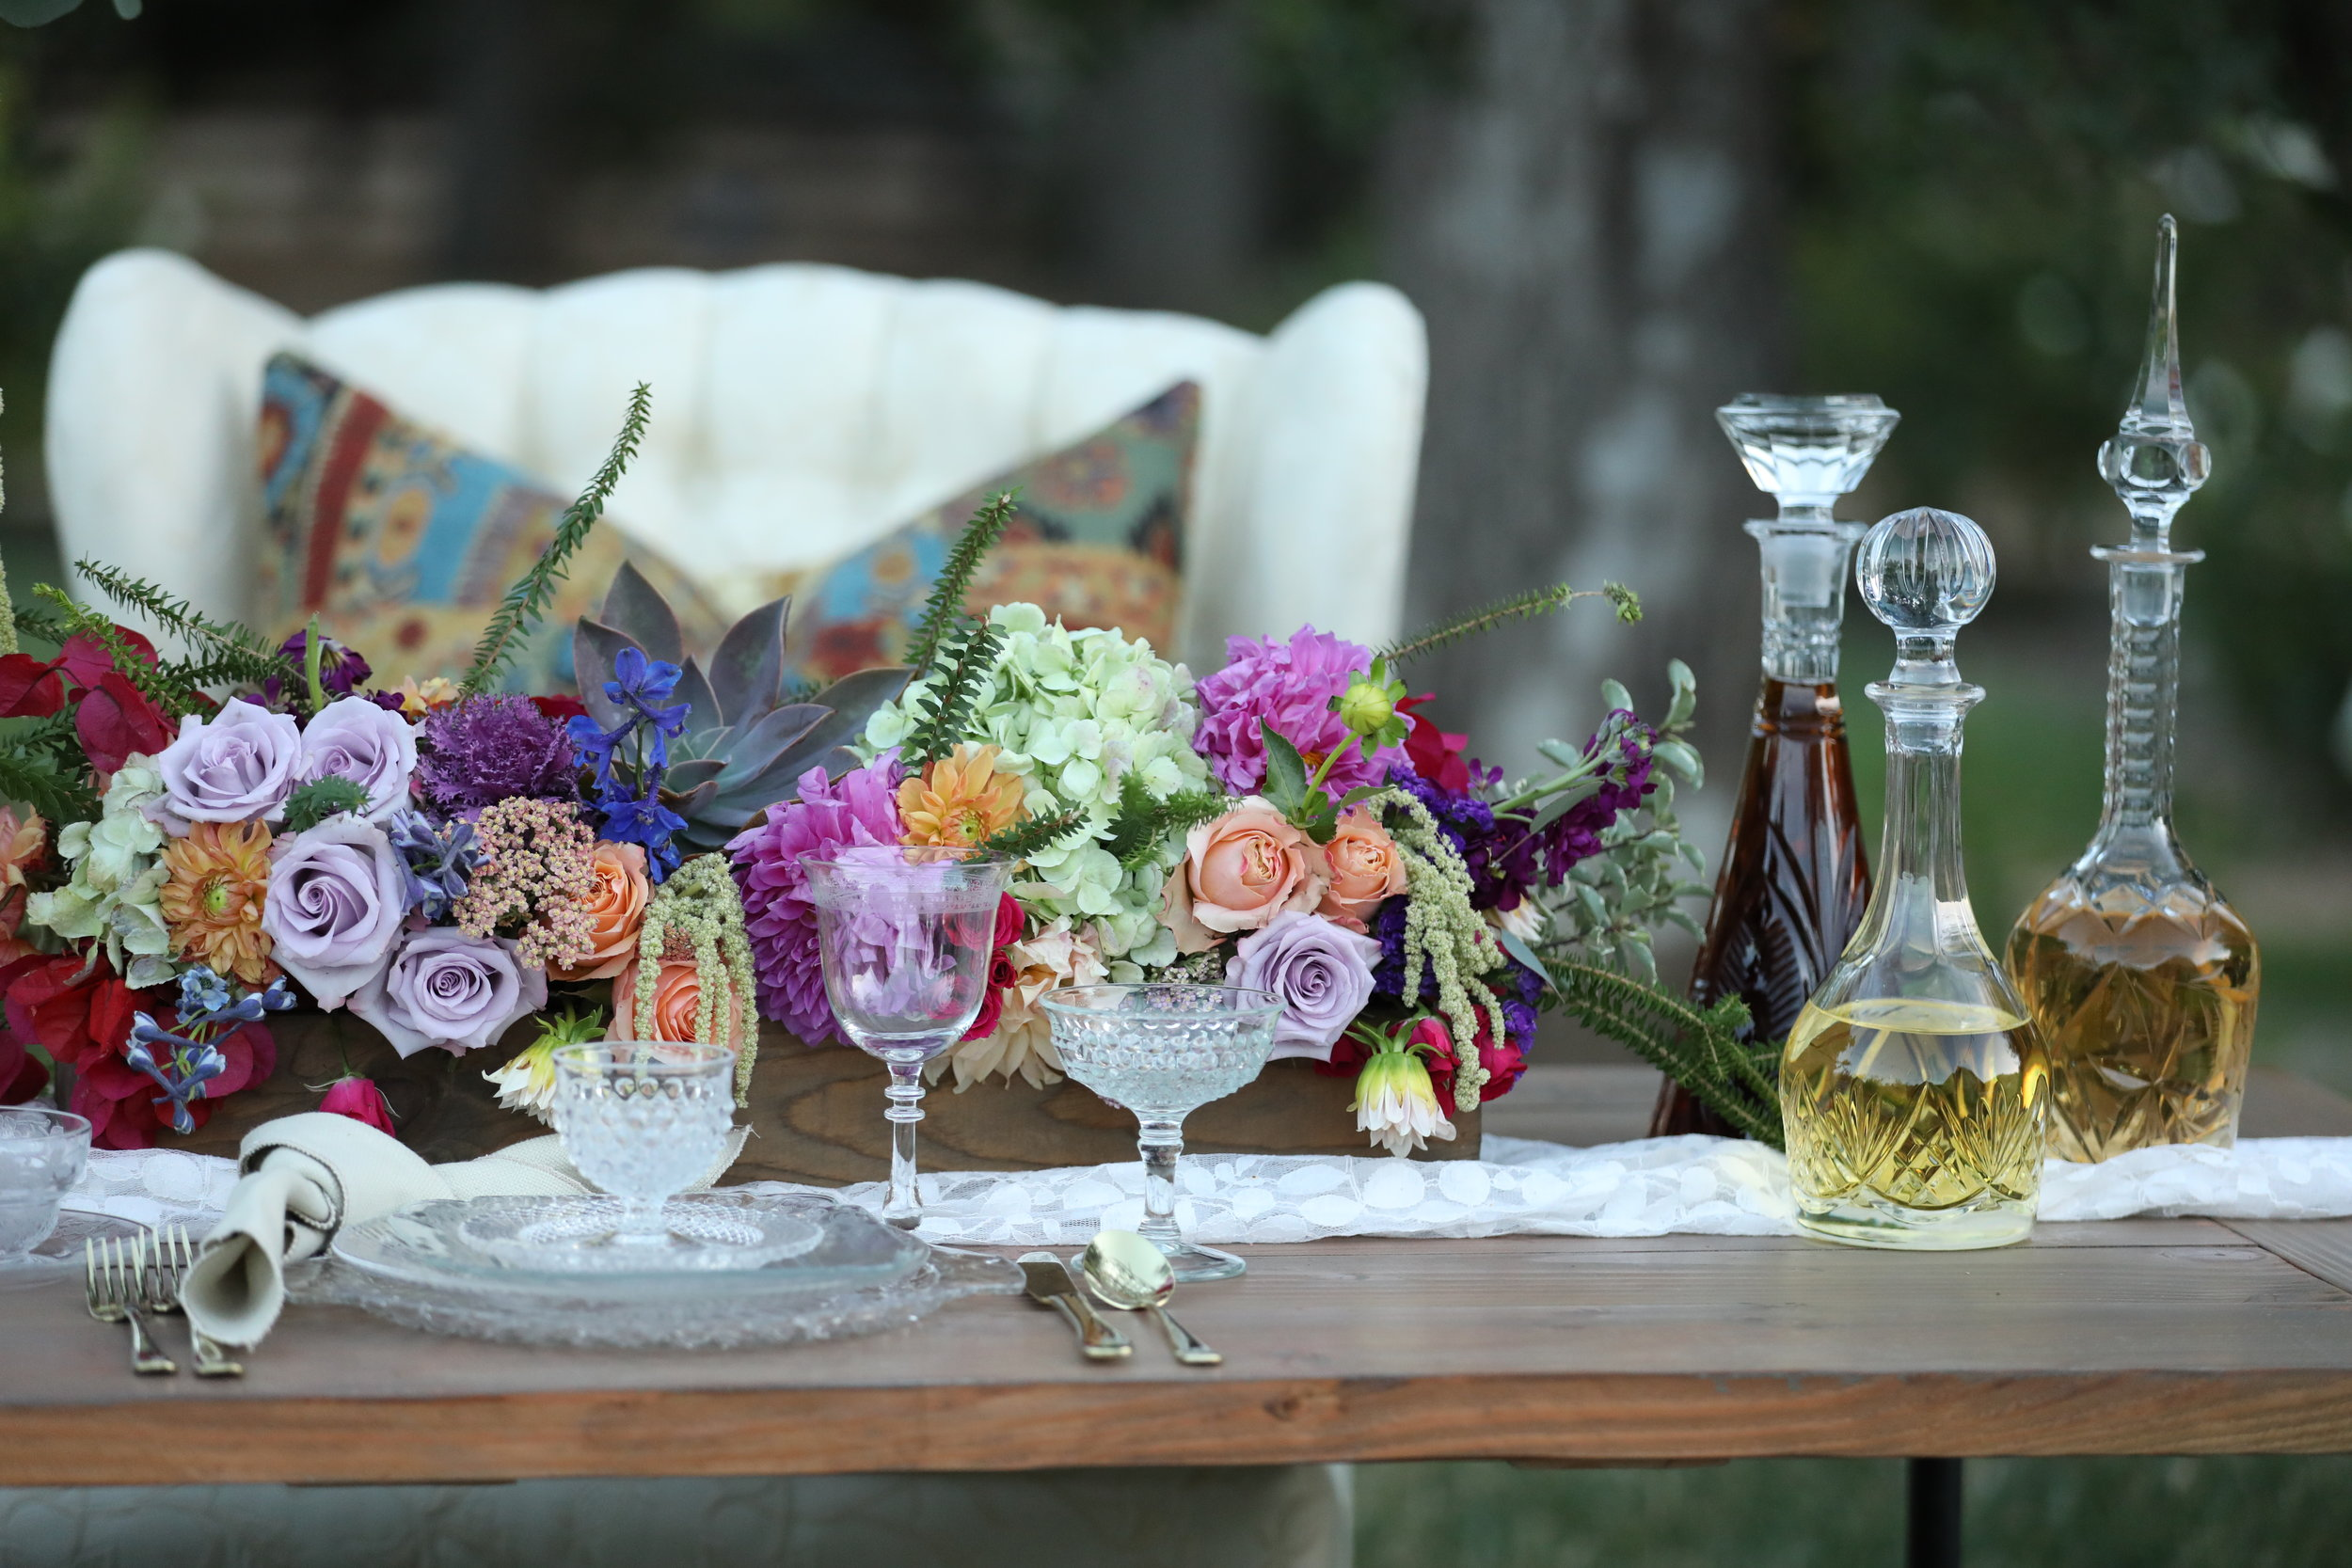 Boho setting with an industrial farm table and cut glass dishes. Vintage decanters and spring floral centerpiece. Wedding rentals in the Temecula Valley and Murrieta.